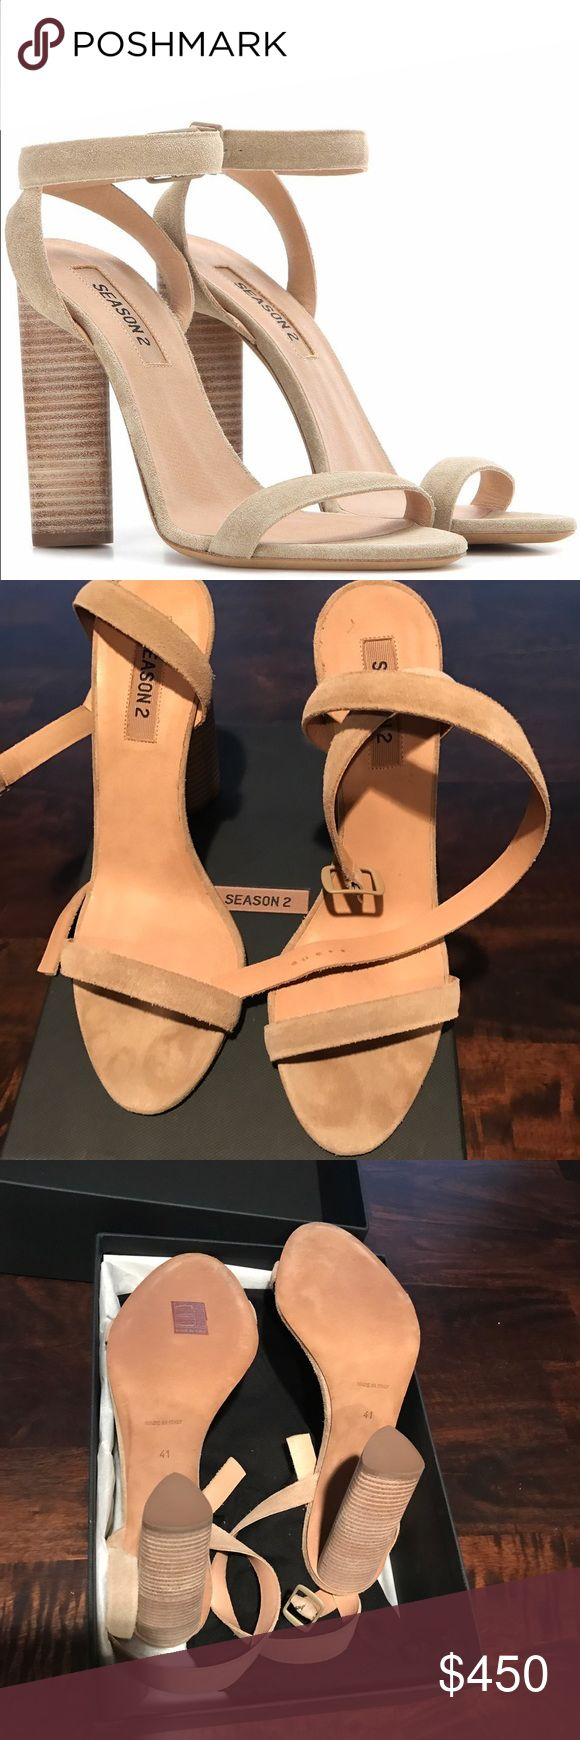 Brand New Yeezy Season 2 Suede Heels Authentic Yeezy Season 2 sandals! Suede upper with leather sole. Wrap around ankle with buckle closure. 4in block heel. Size 41 (fits like a 10) Brand new never worn before. Largest size which is the hardest to find, sold out everywhere! Super exclusive shoe. NO TRADES accepting best offer these will go fast! Comes with original box and dust bag! Yeezy Shoes Heels